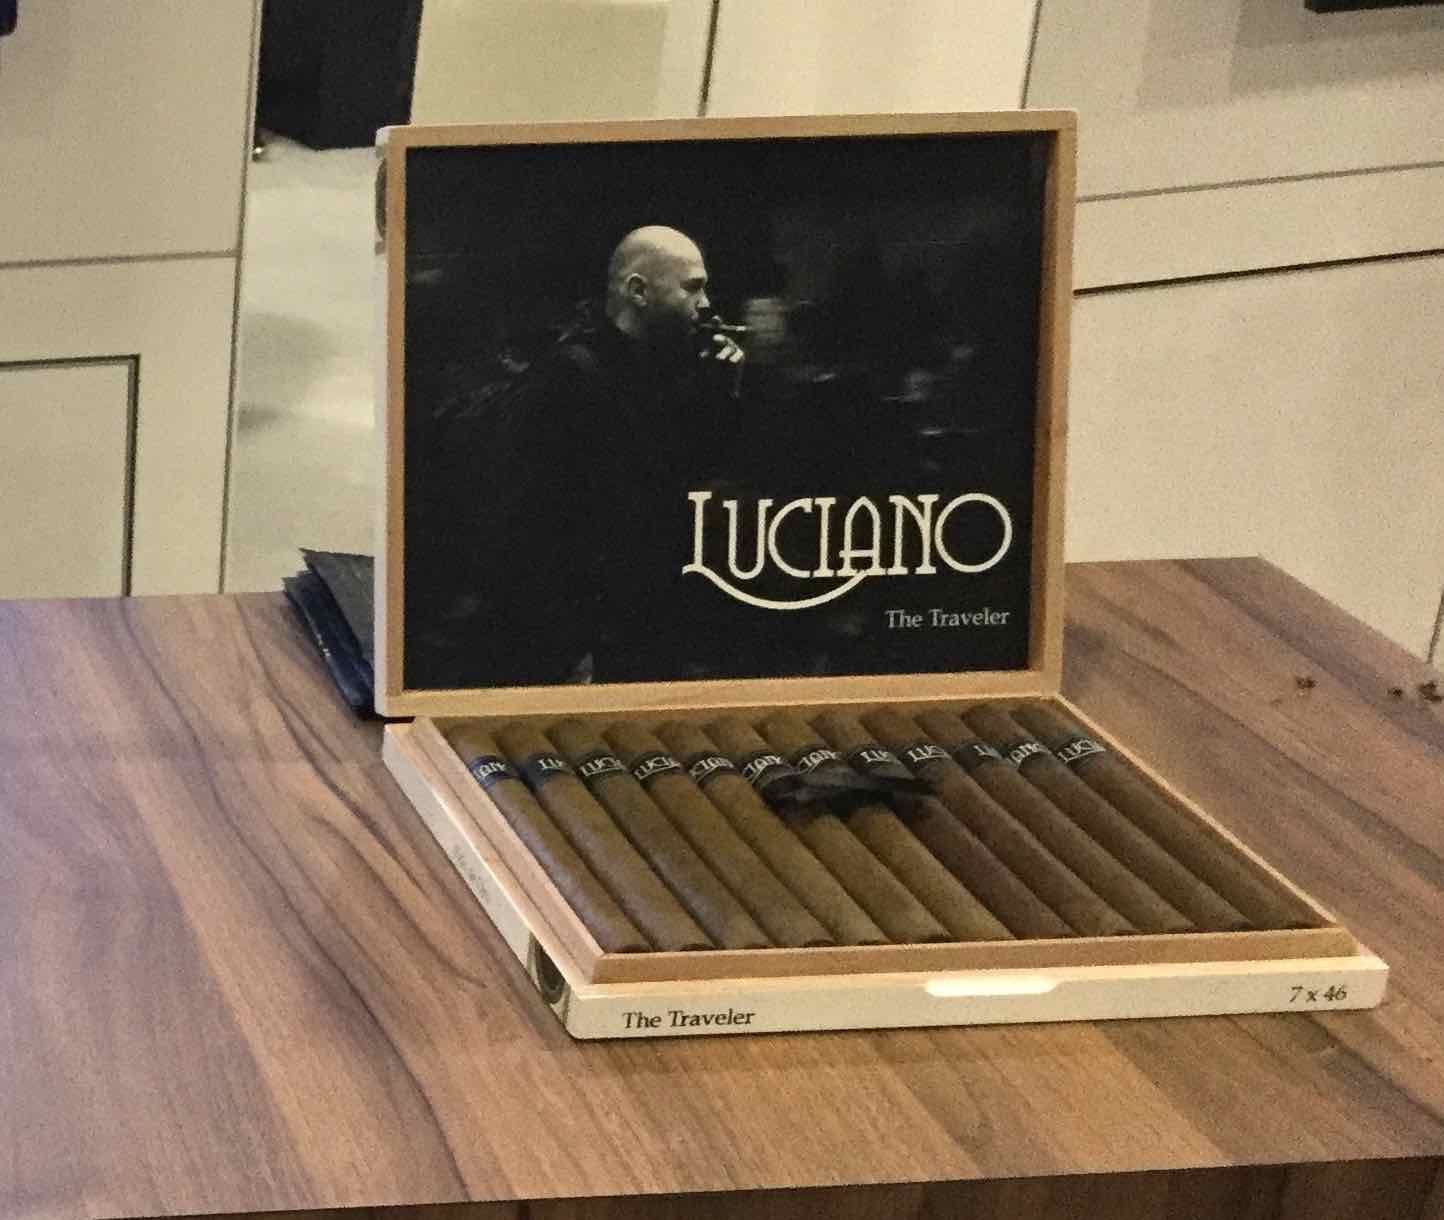 Cigar News: A.C.E. Prime Launches Luciano The Traveler at 2019 IPCPR